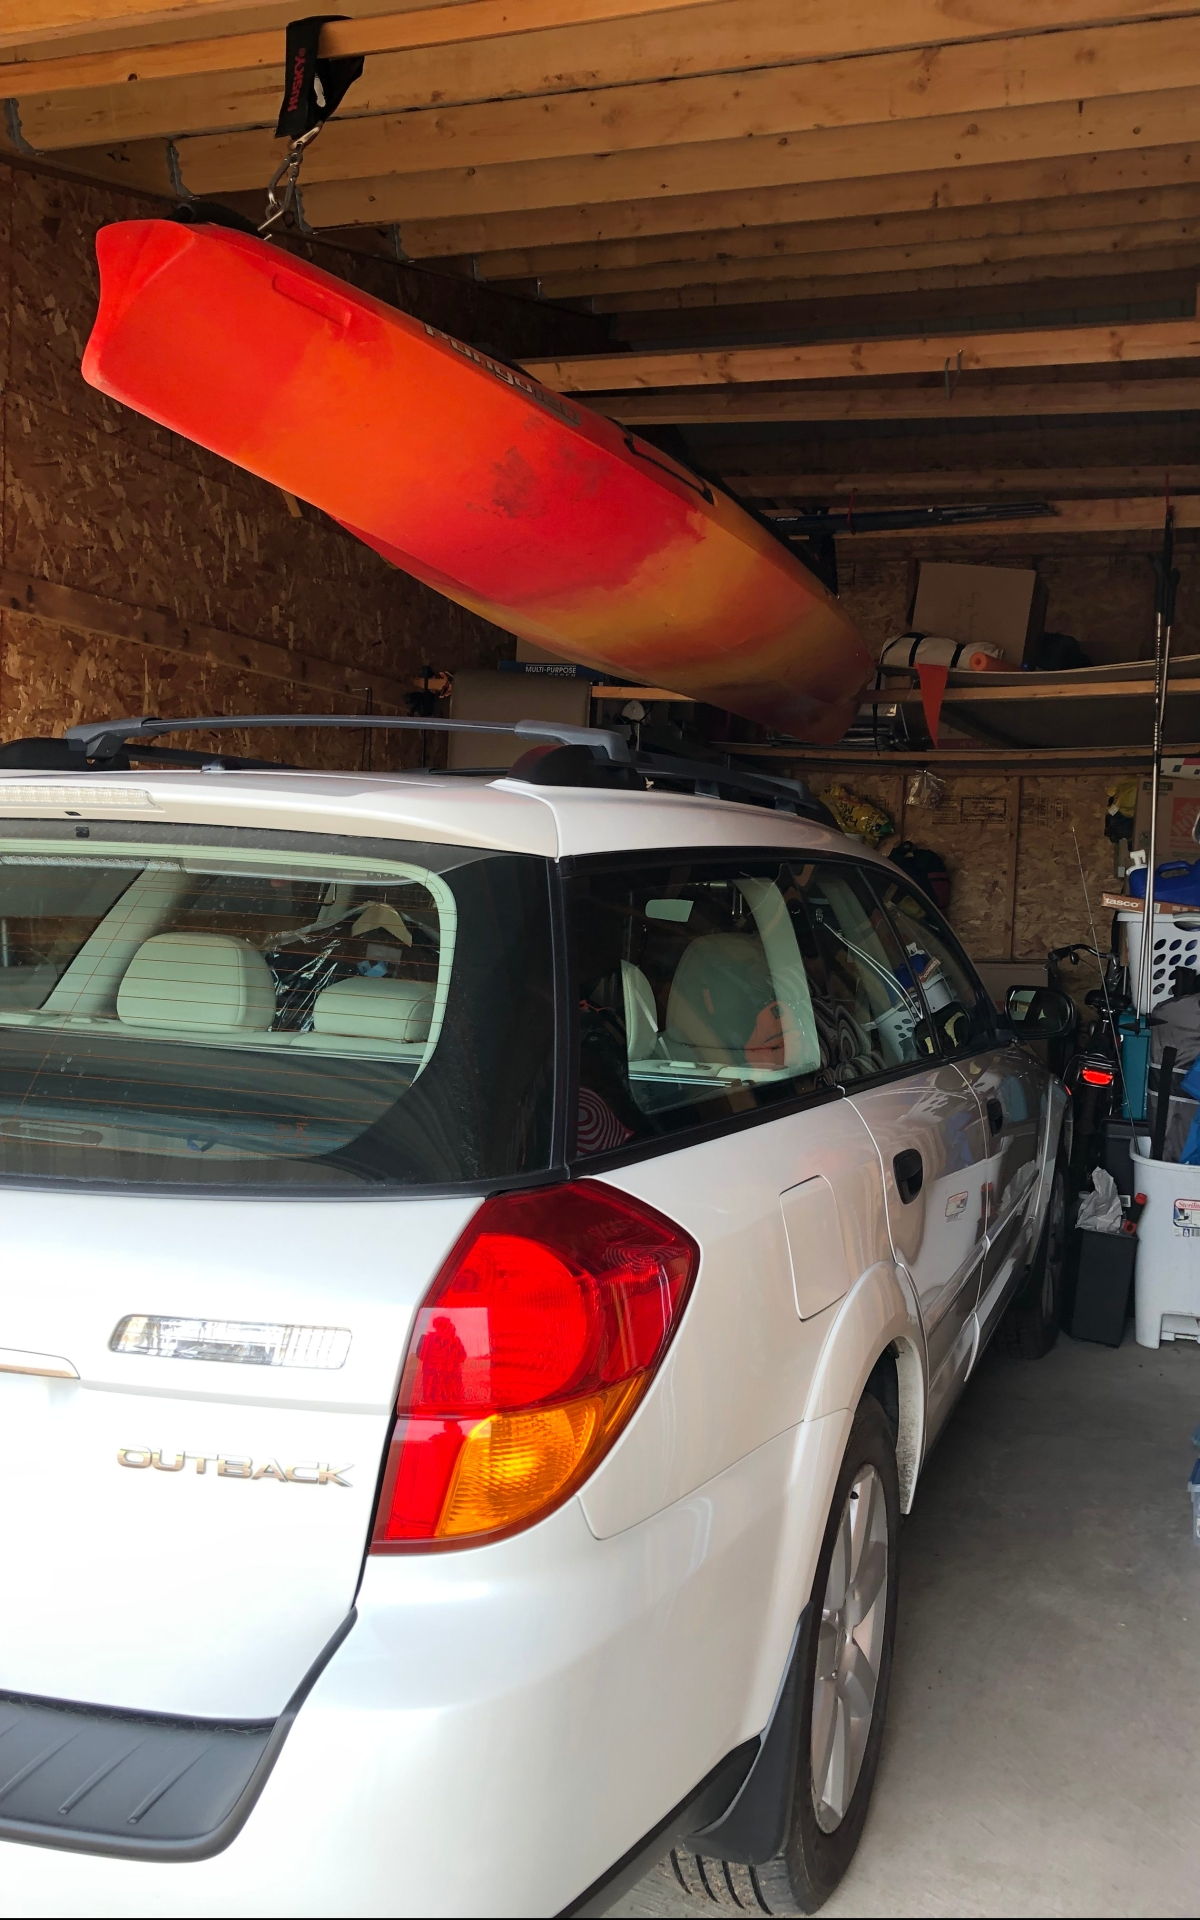 kayak in storage